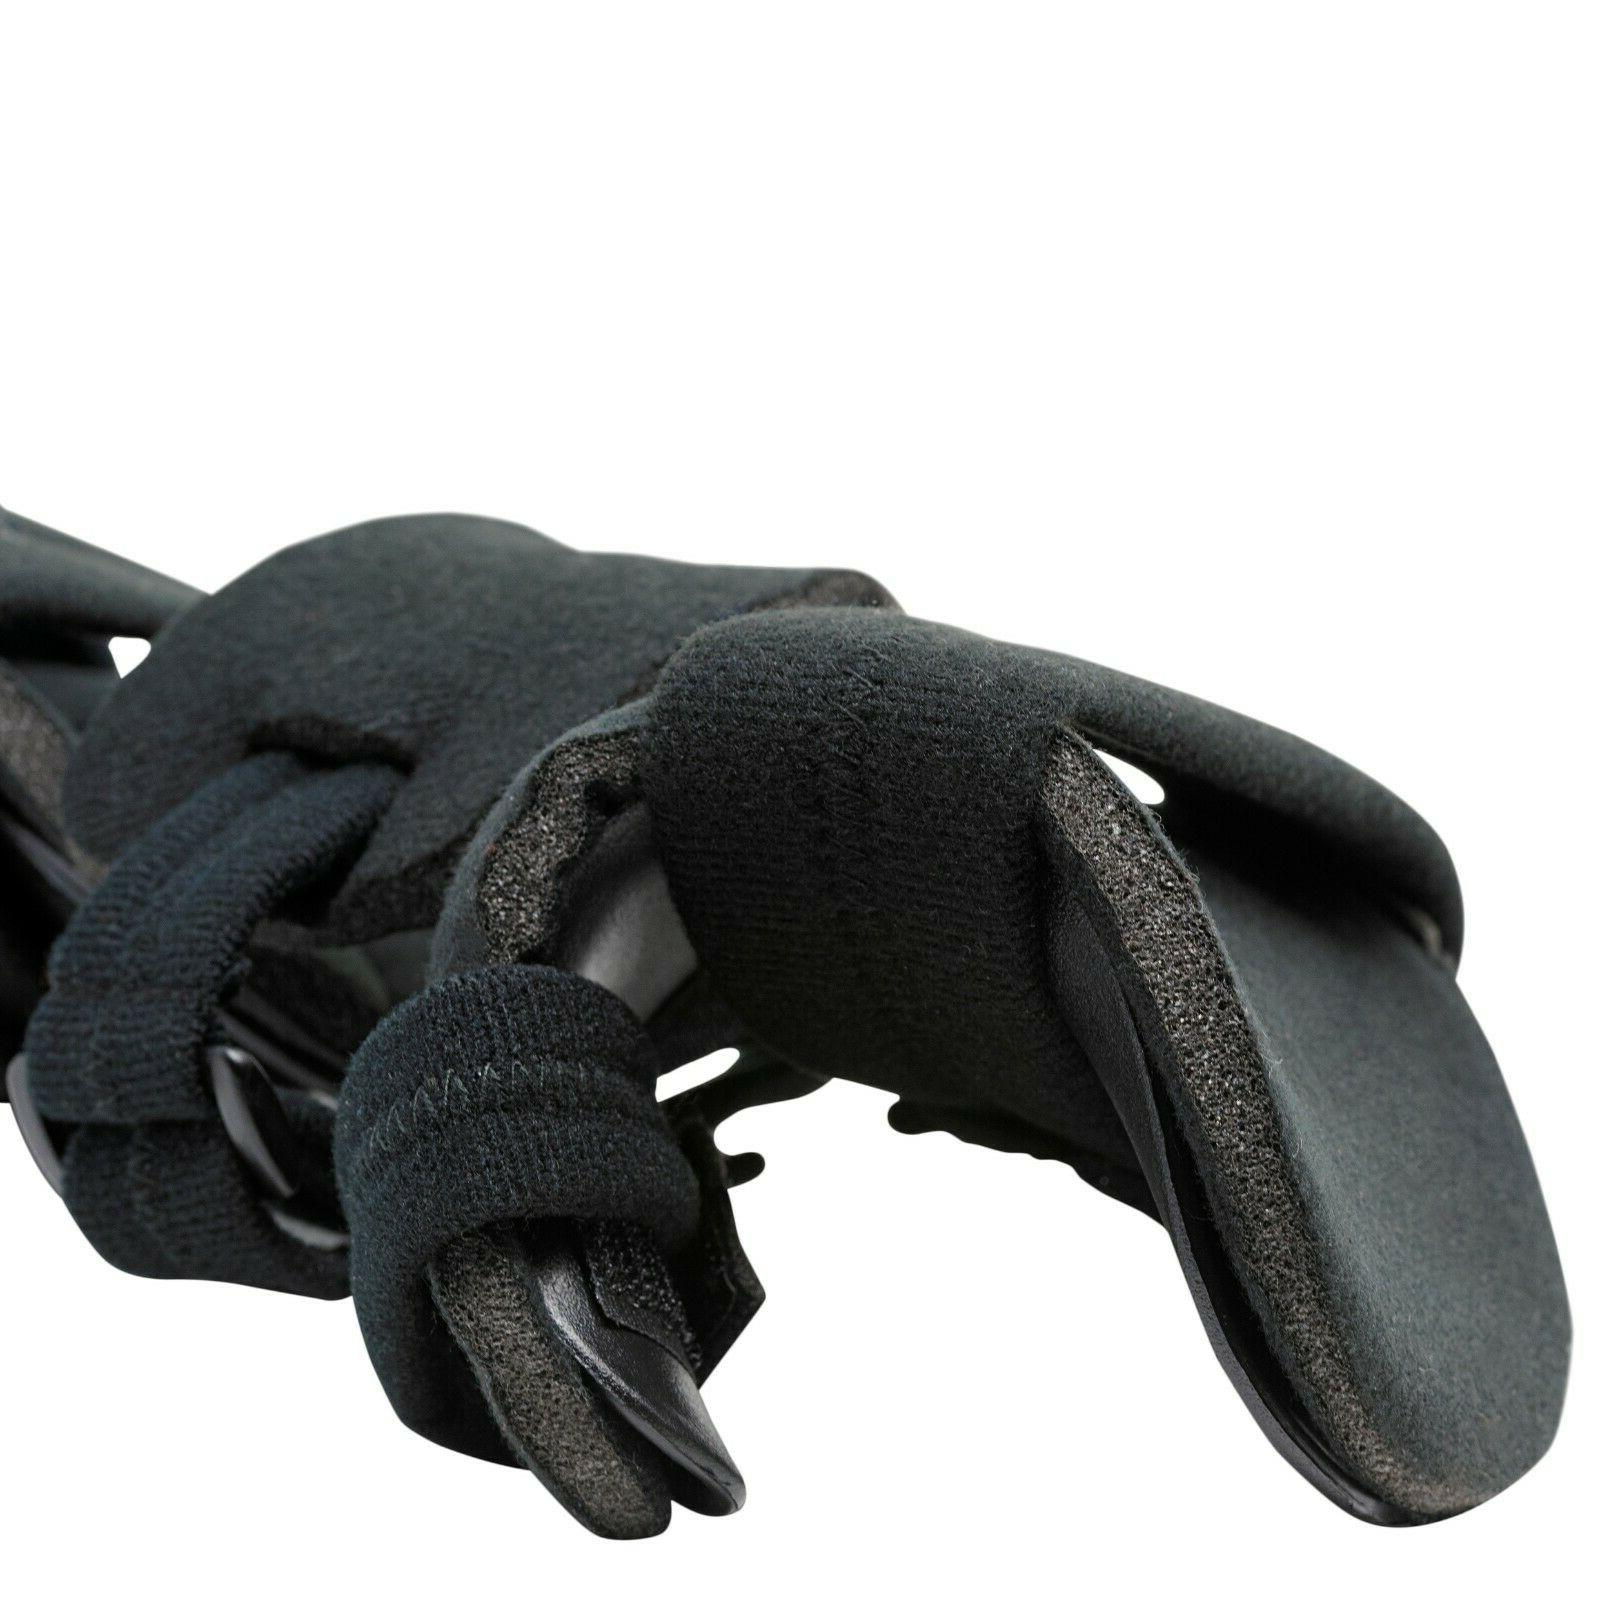 Stroke Soft Resting Hand Splint for Flexion Contractures, Comfortab